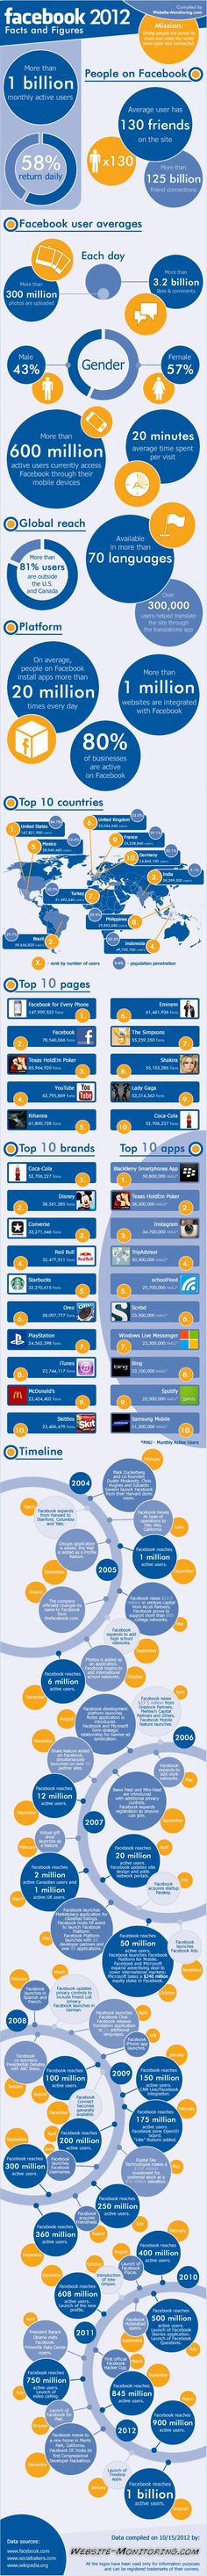 FaceBook 2012 Facts & Figures